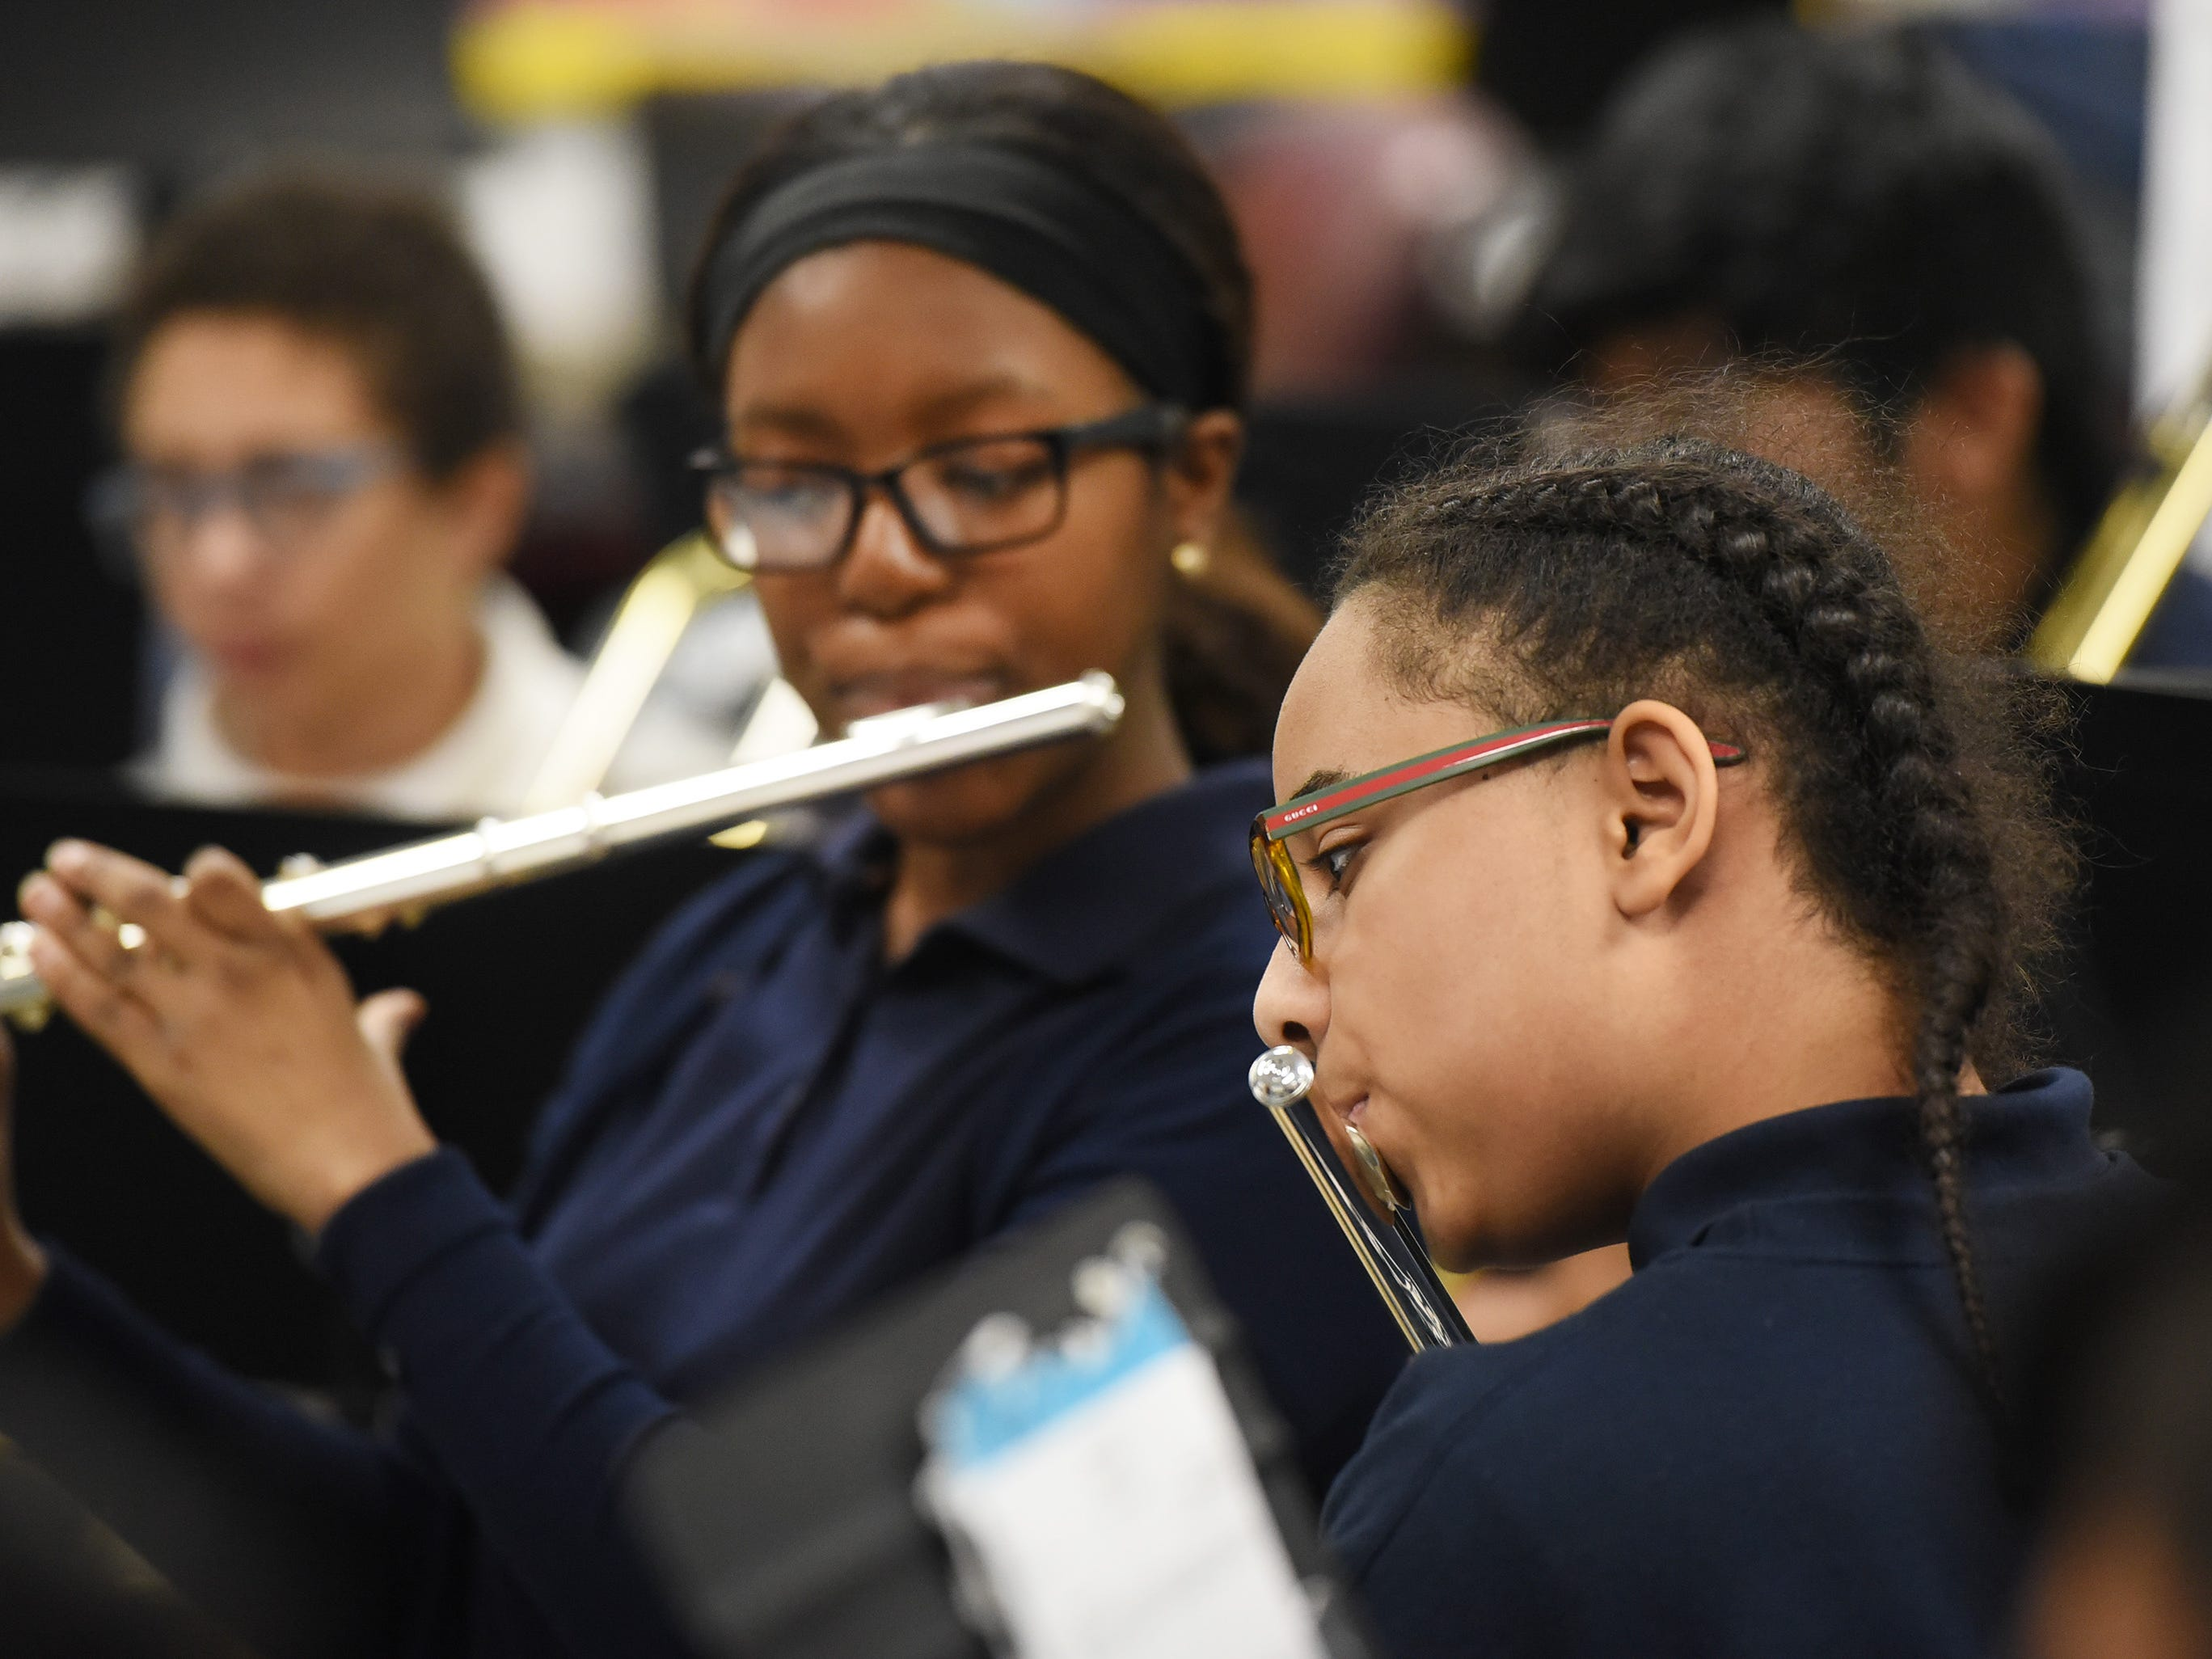 Aaliyah Nelson (rear, 8th) and Moises Grullon(foreground, 7th) play their flutes as they practice led by the Band Director Nancy Horowitz during a music class at School #24 in Paterson on 01/09/19.